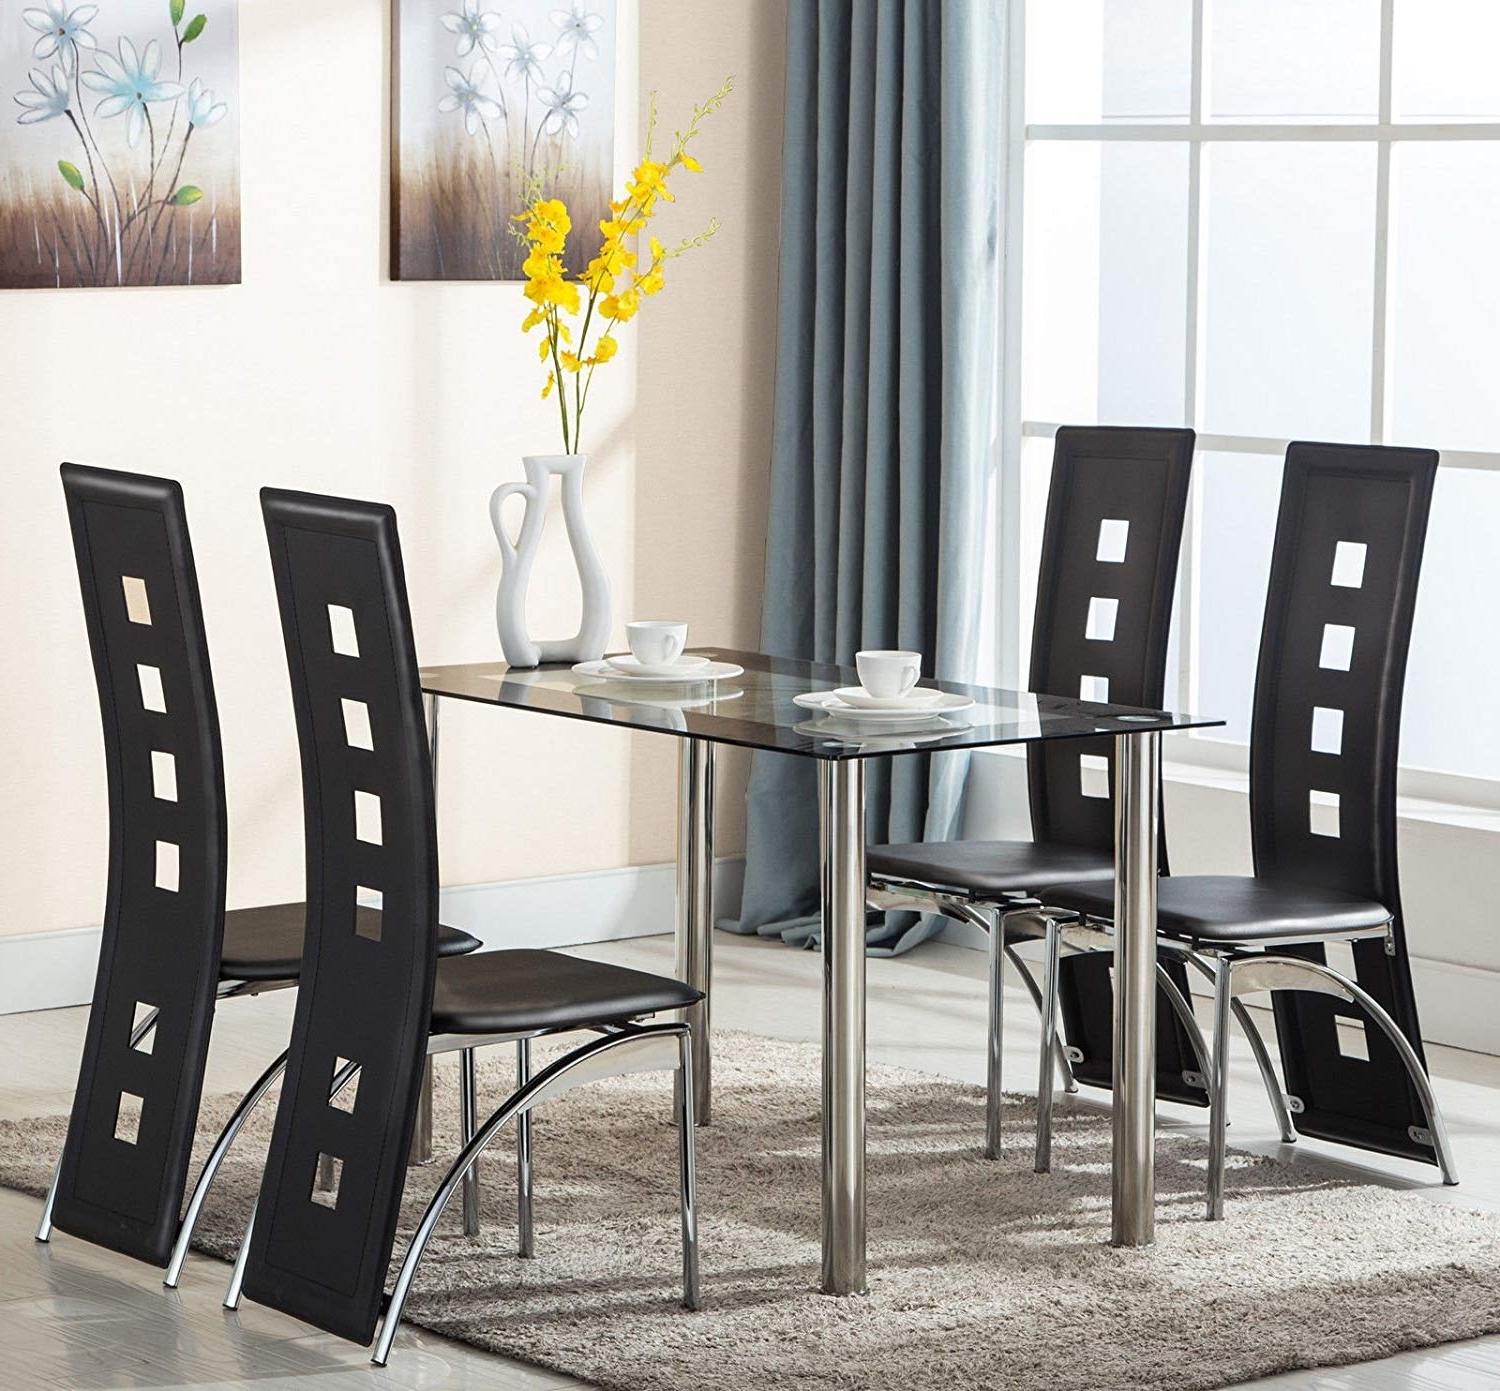 White Glass Dining Tables And Chairs Pertaining To Well Known Mecor Glass Dining Table And Faux Leather Chairs Dining Kitchen (View 13 of 25)